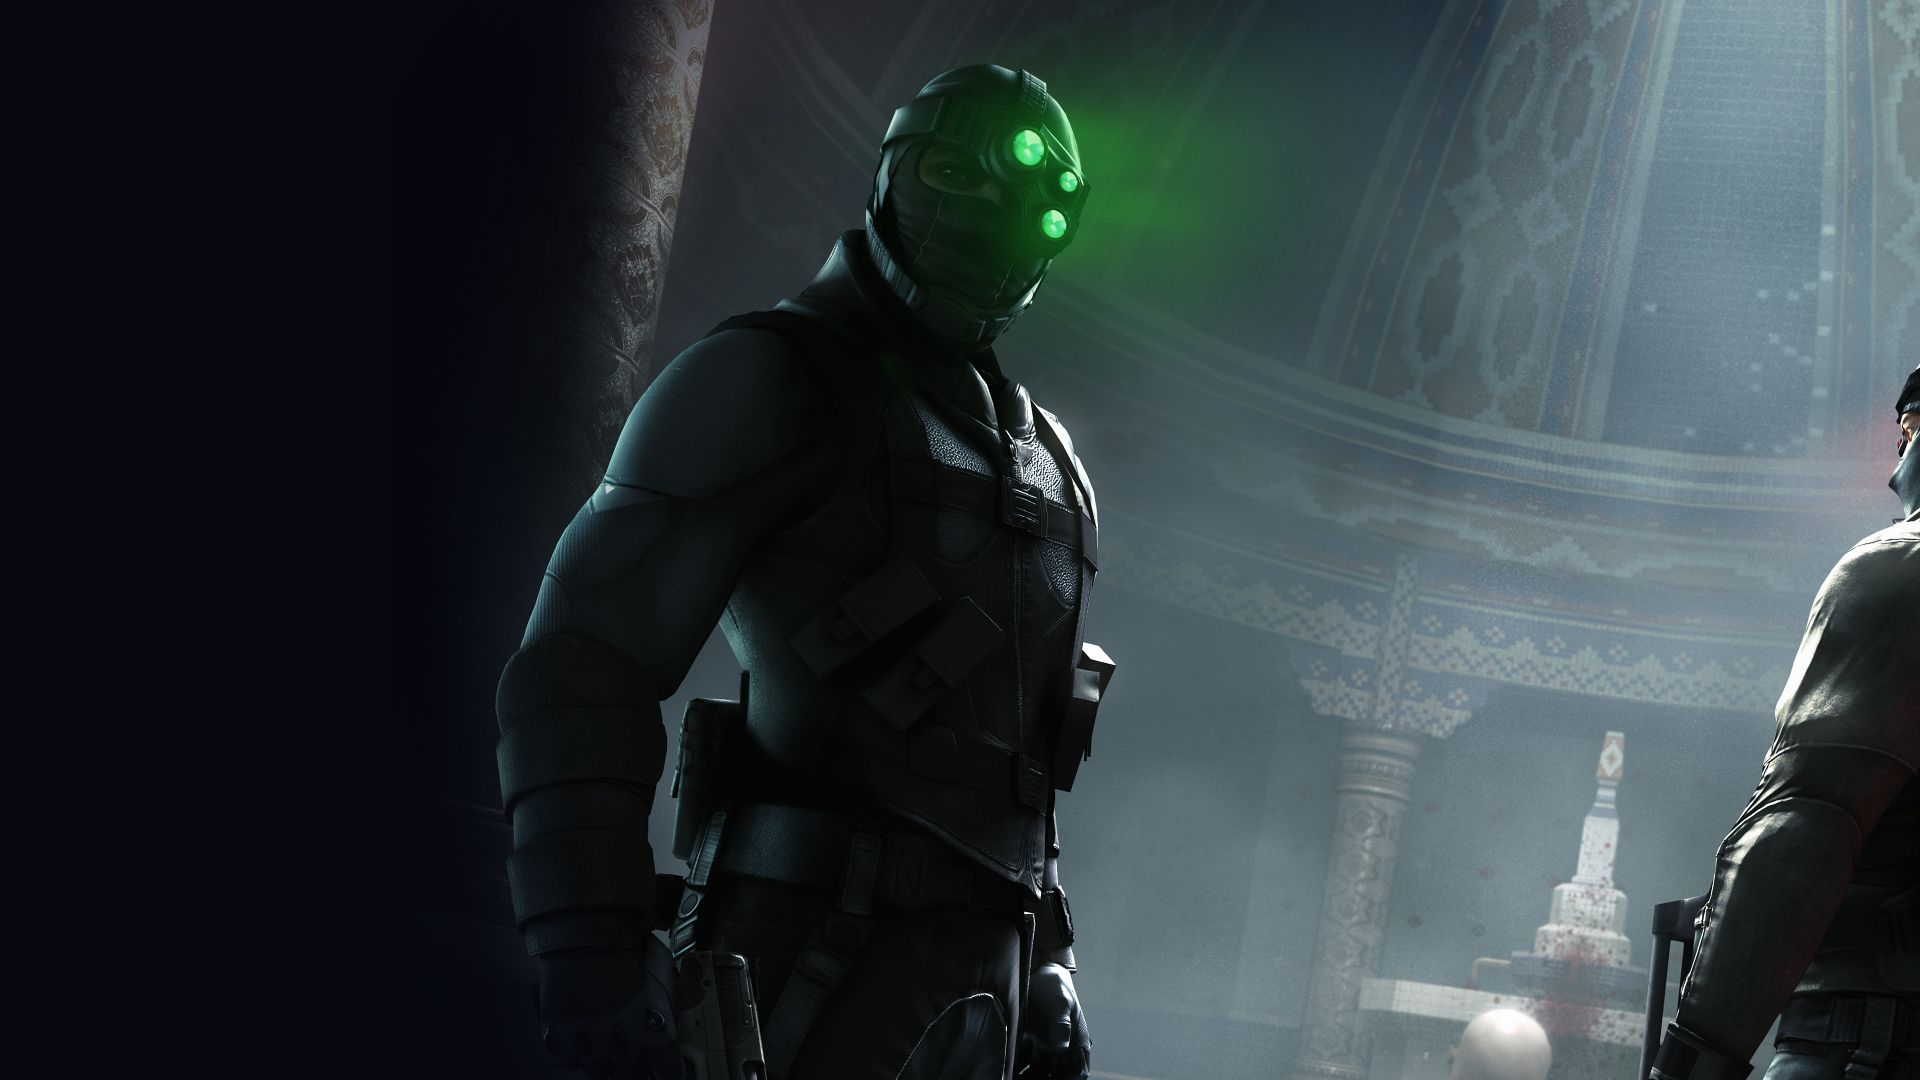 New Splinter Cell game spotted online ahead of official announcement